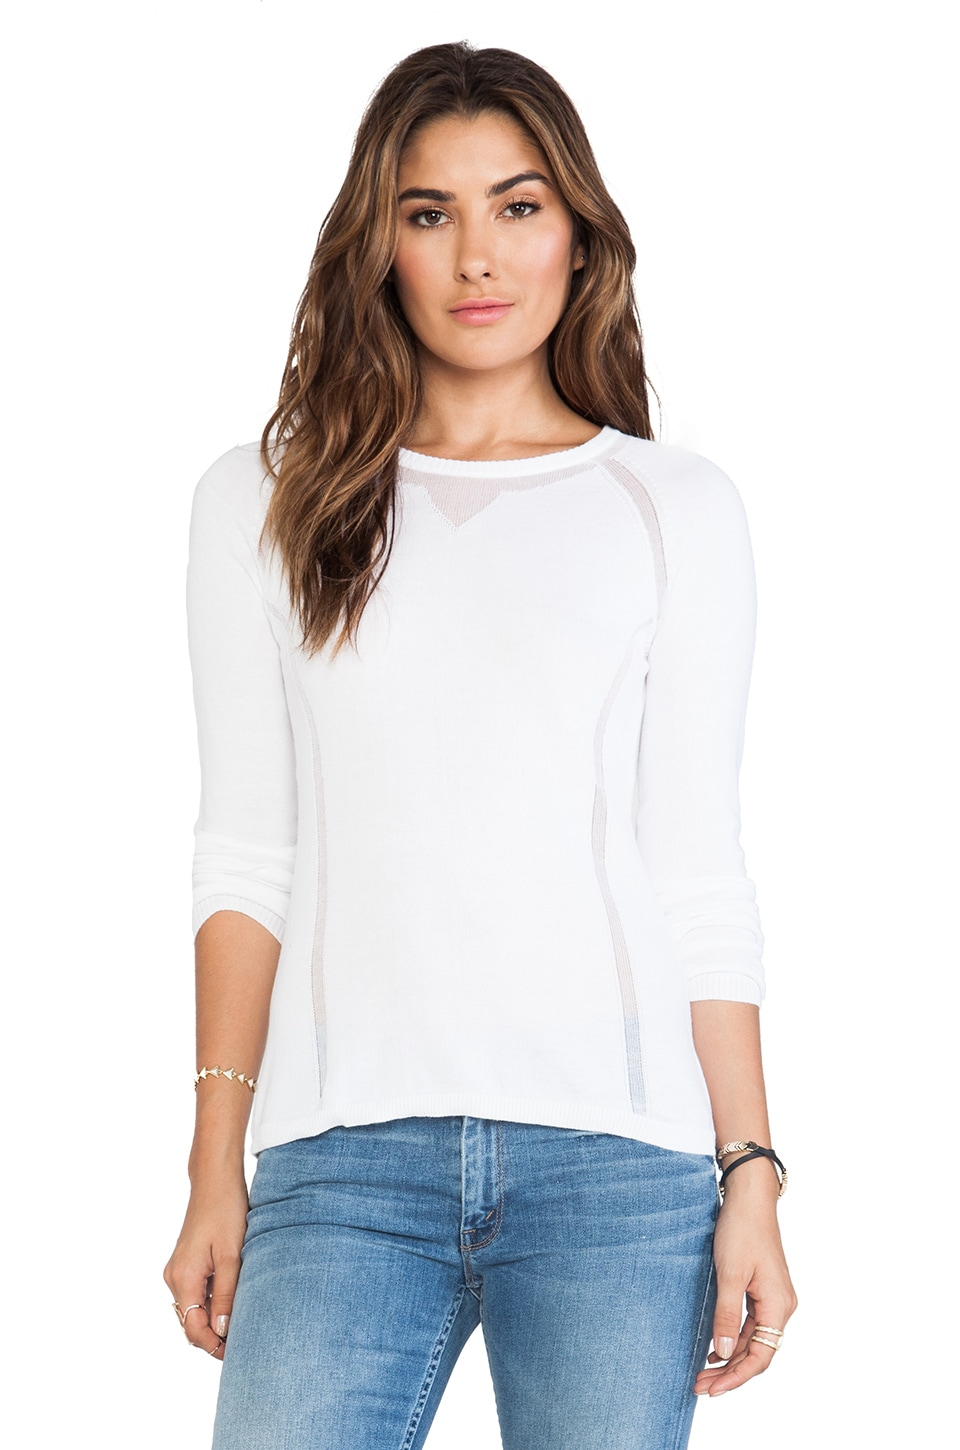 Autumn Cashmere Sheer Athletic Crew Neck Sweater in Bleach White